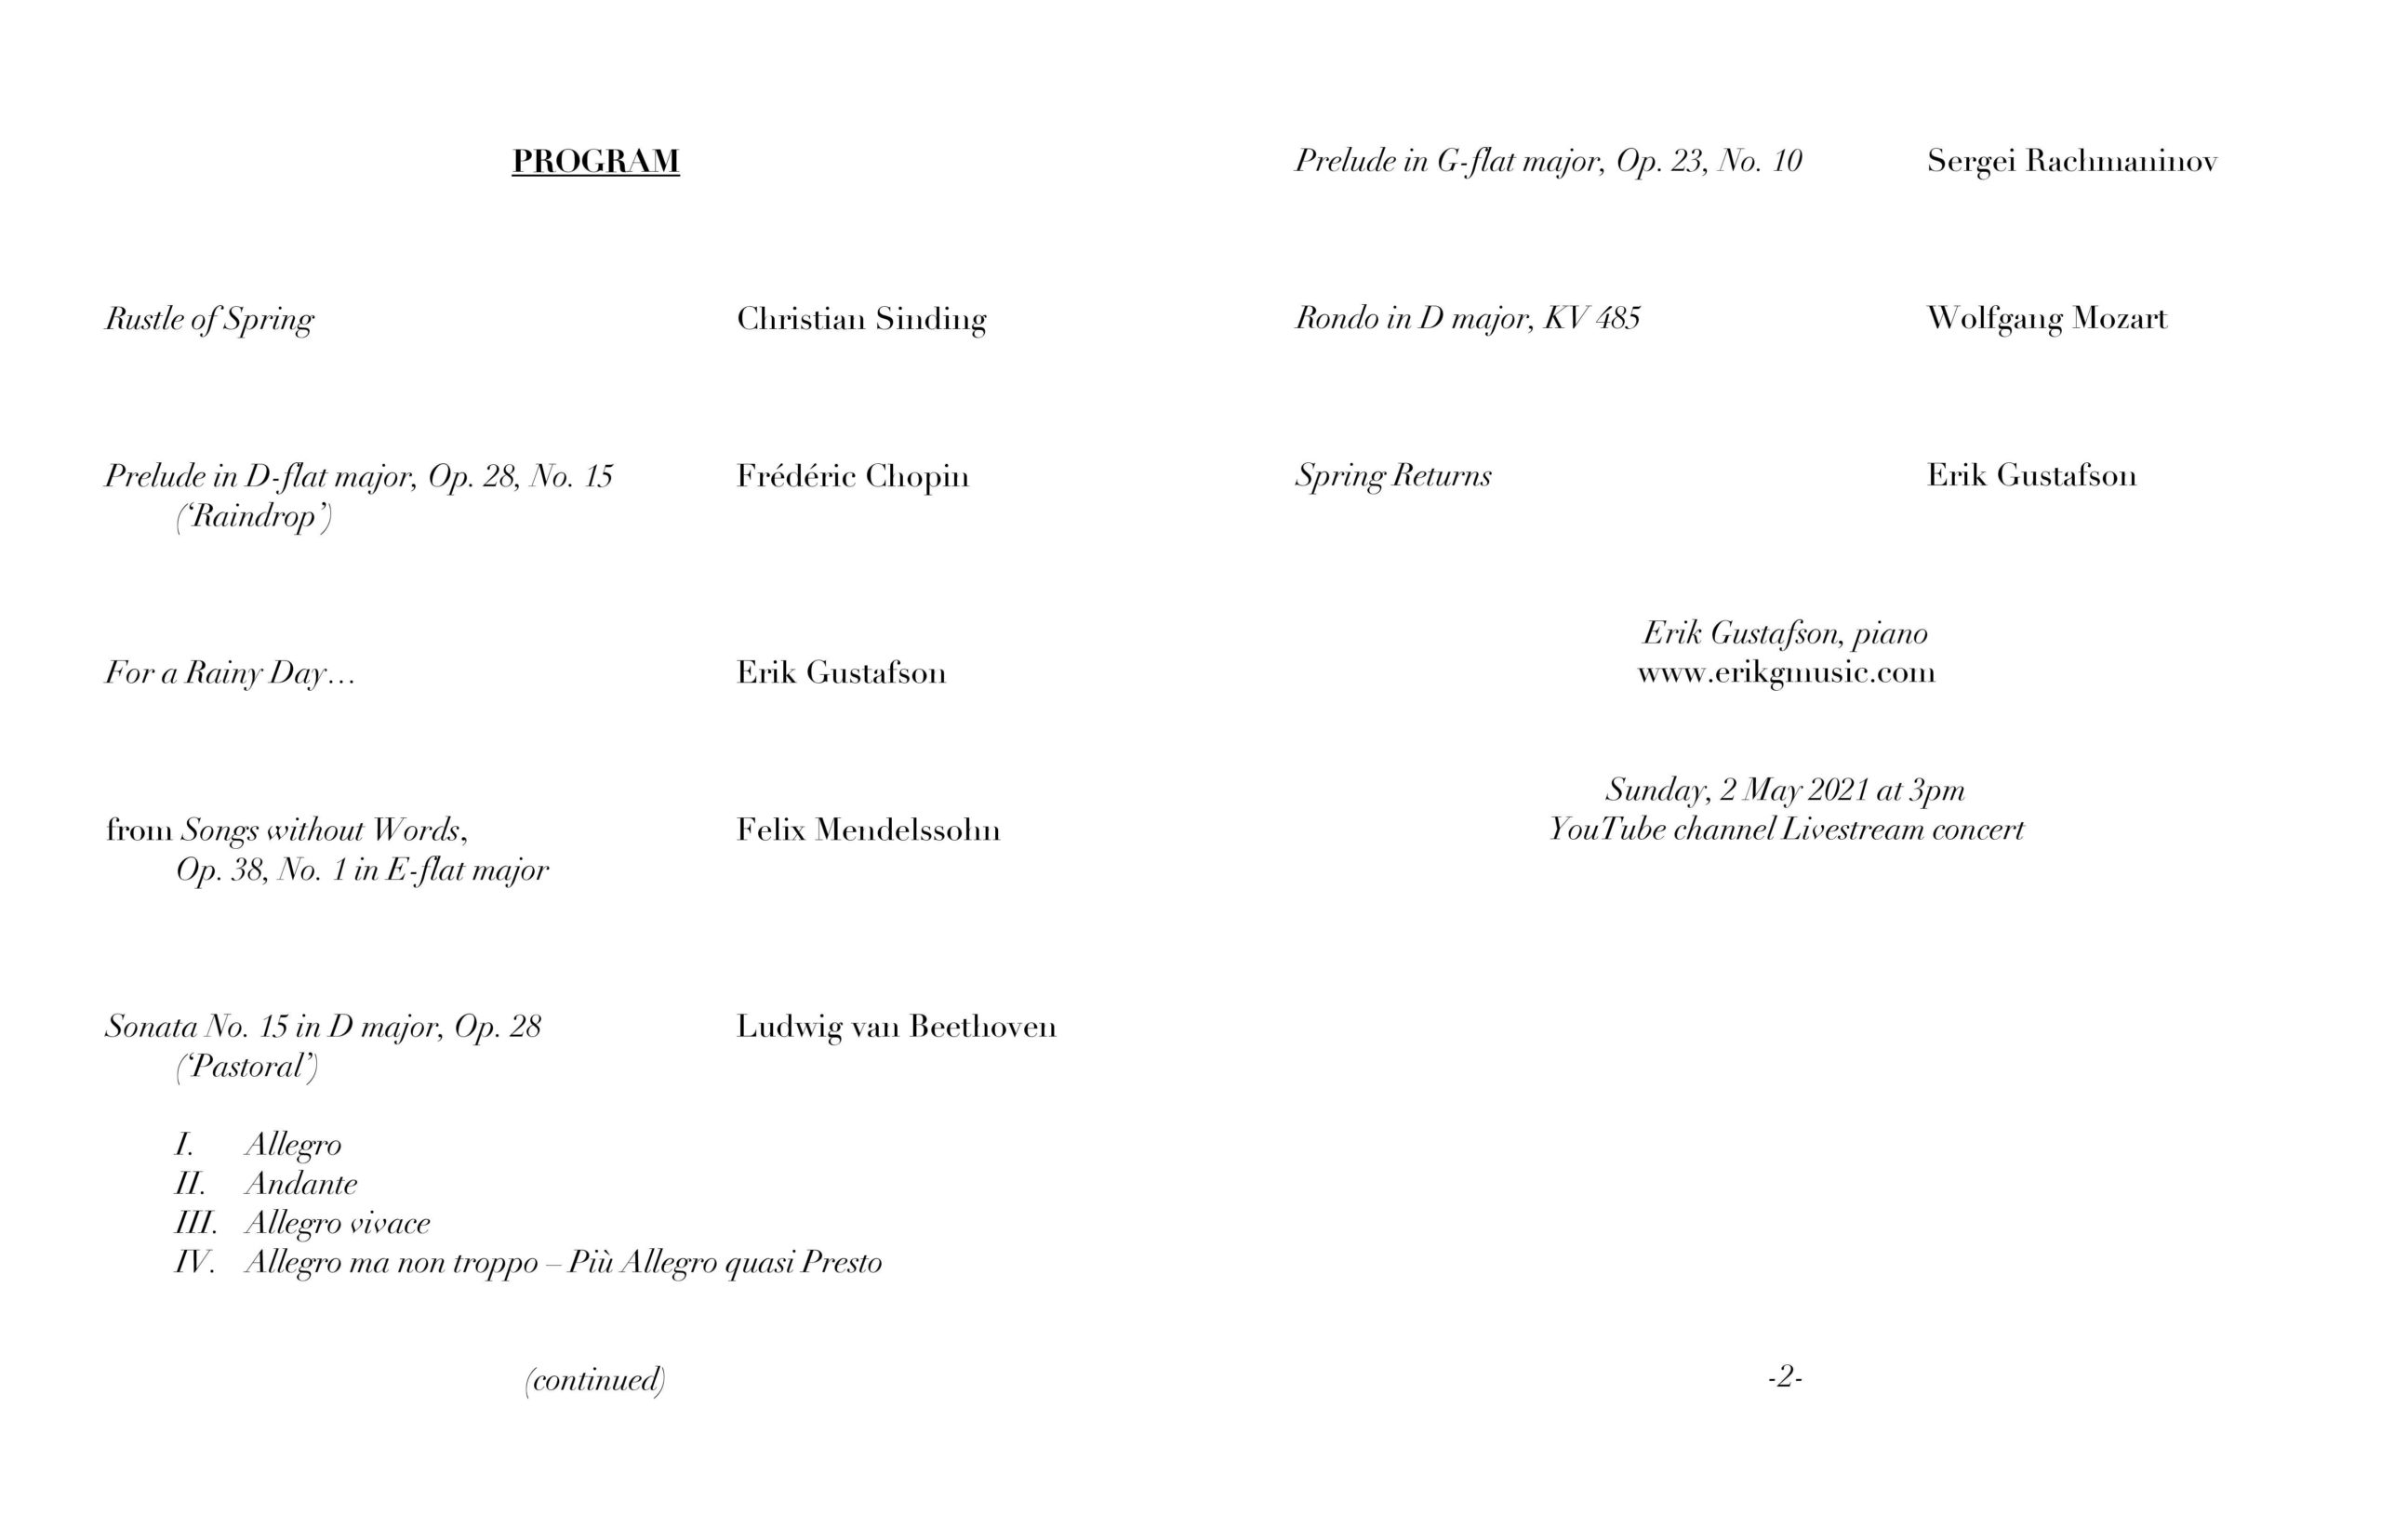 Concert Program for May 2